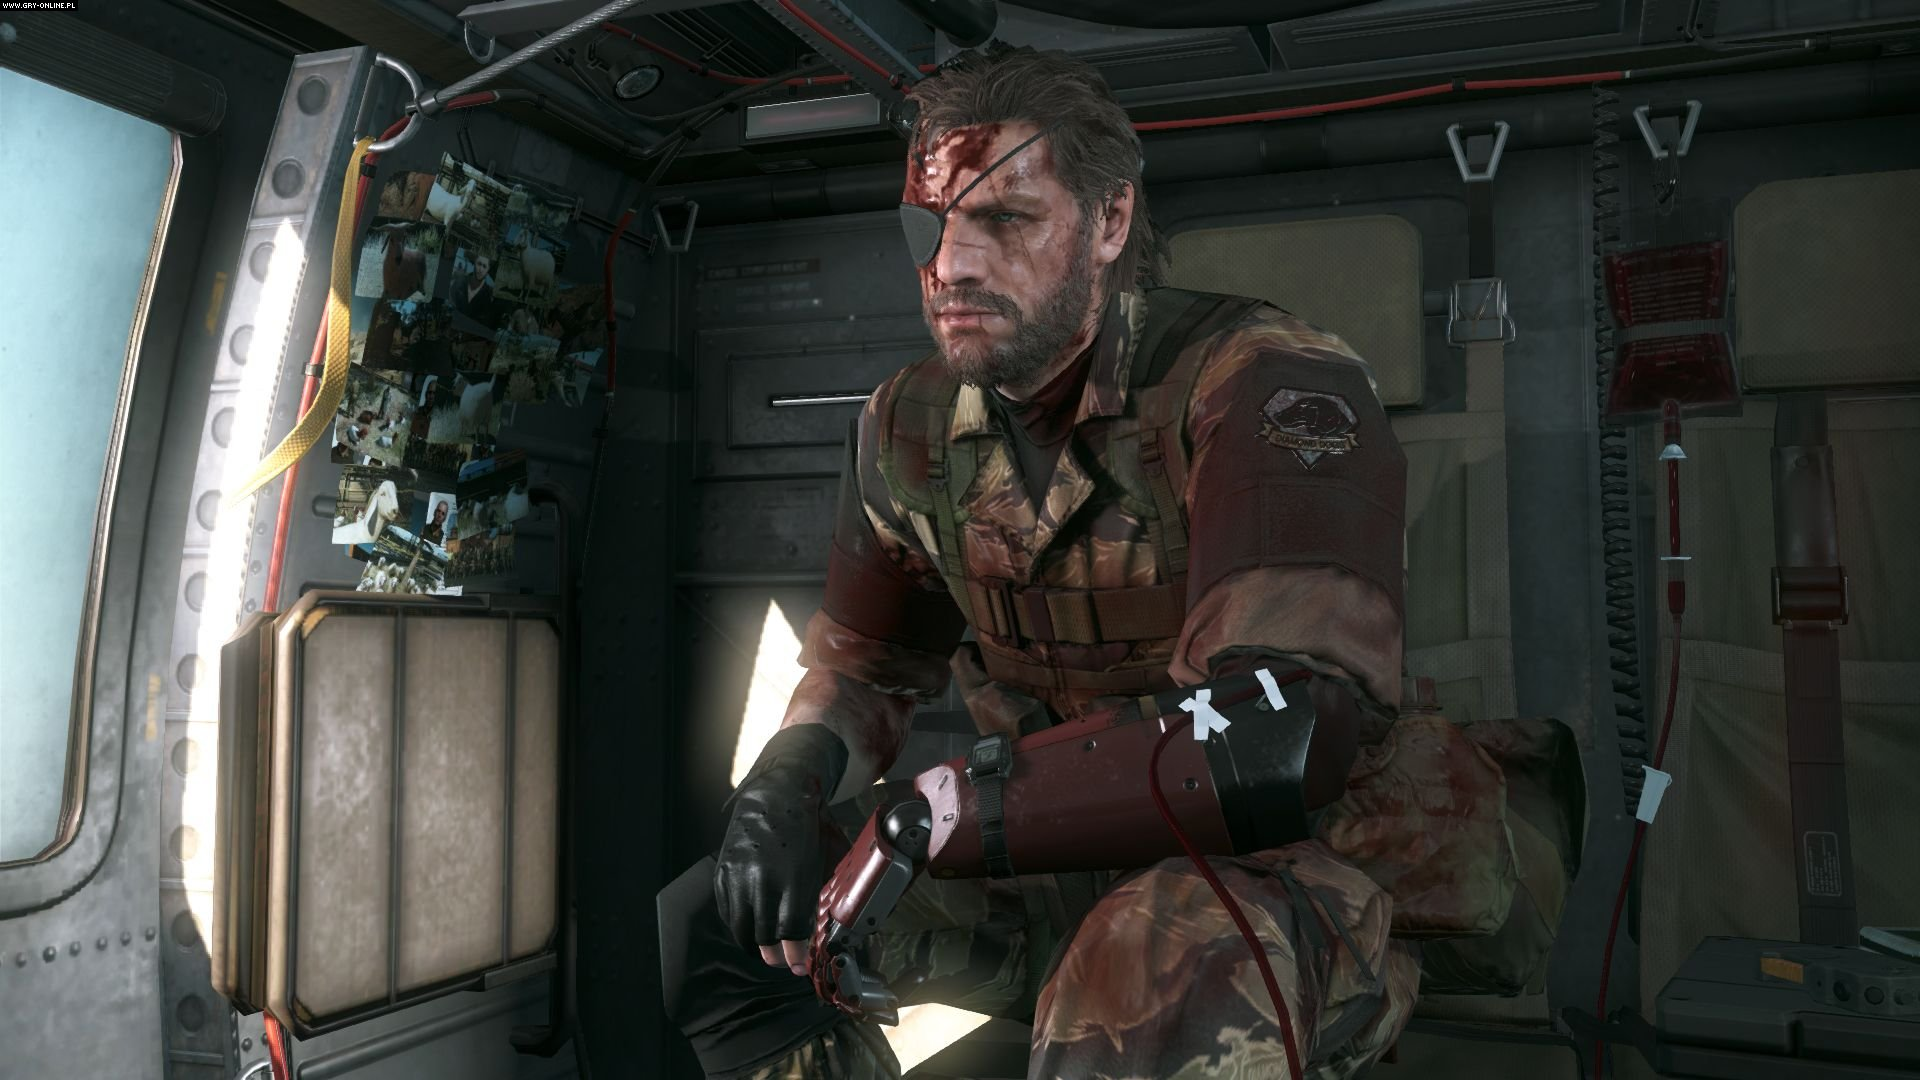 Metal Gear Solid V: The Phantom Pain PC, PS4, XONE Games Image 75/277, Konami